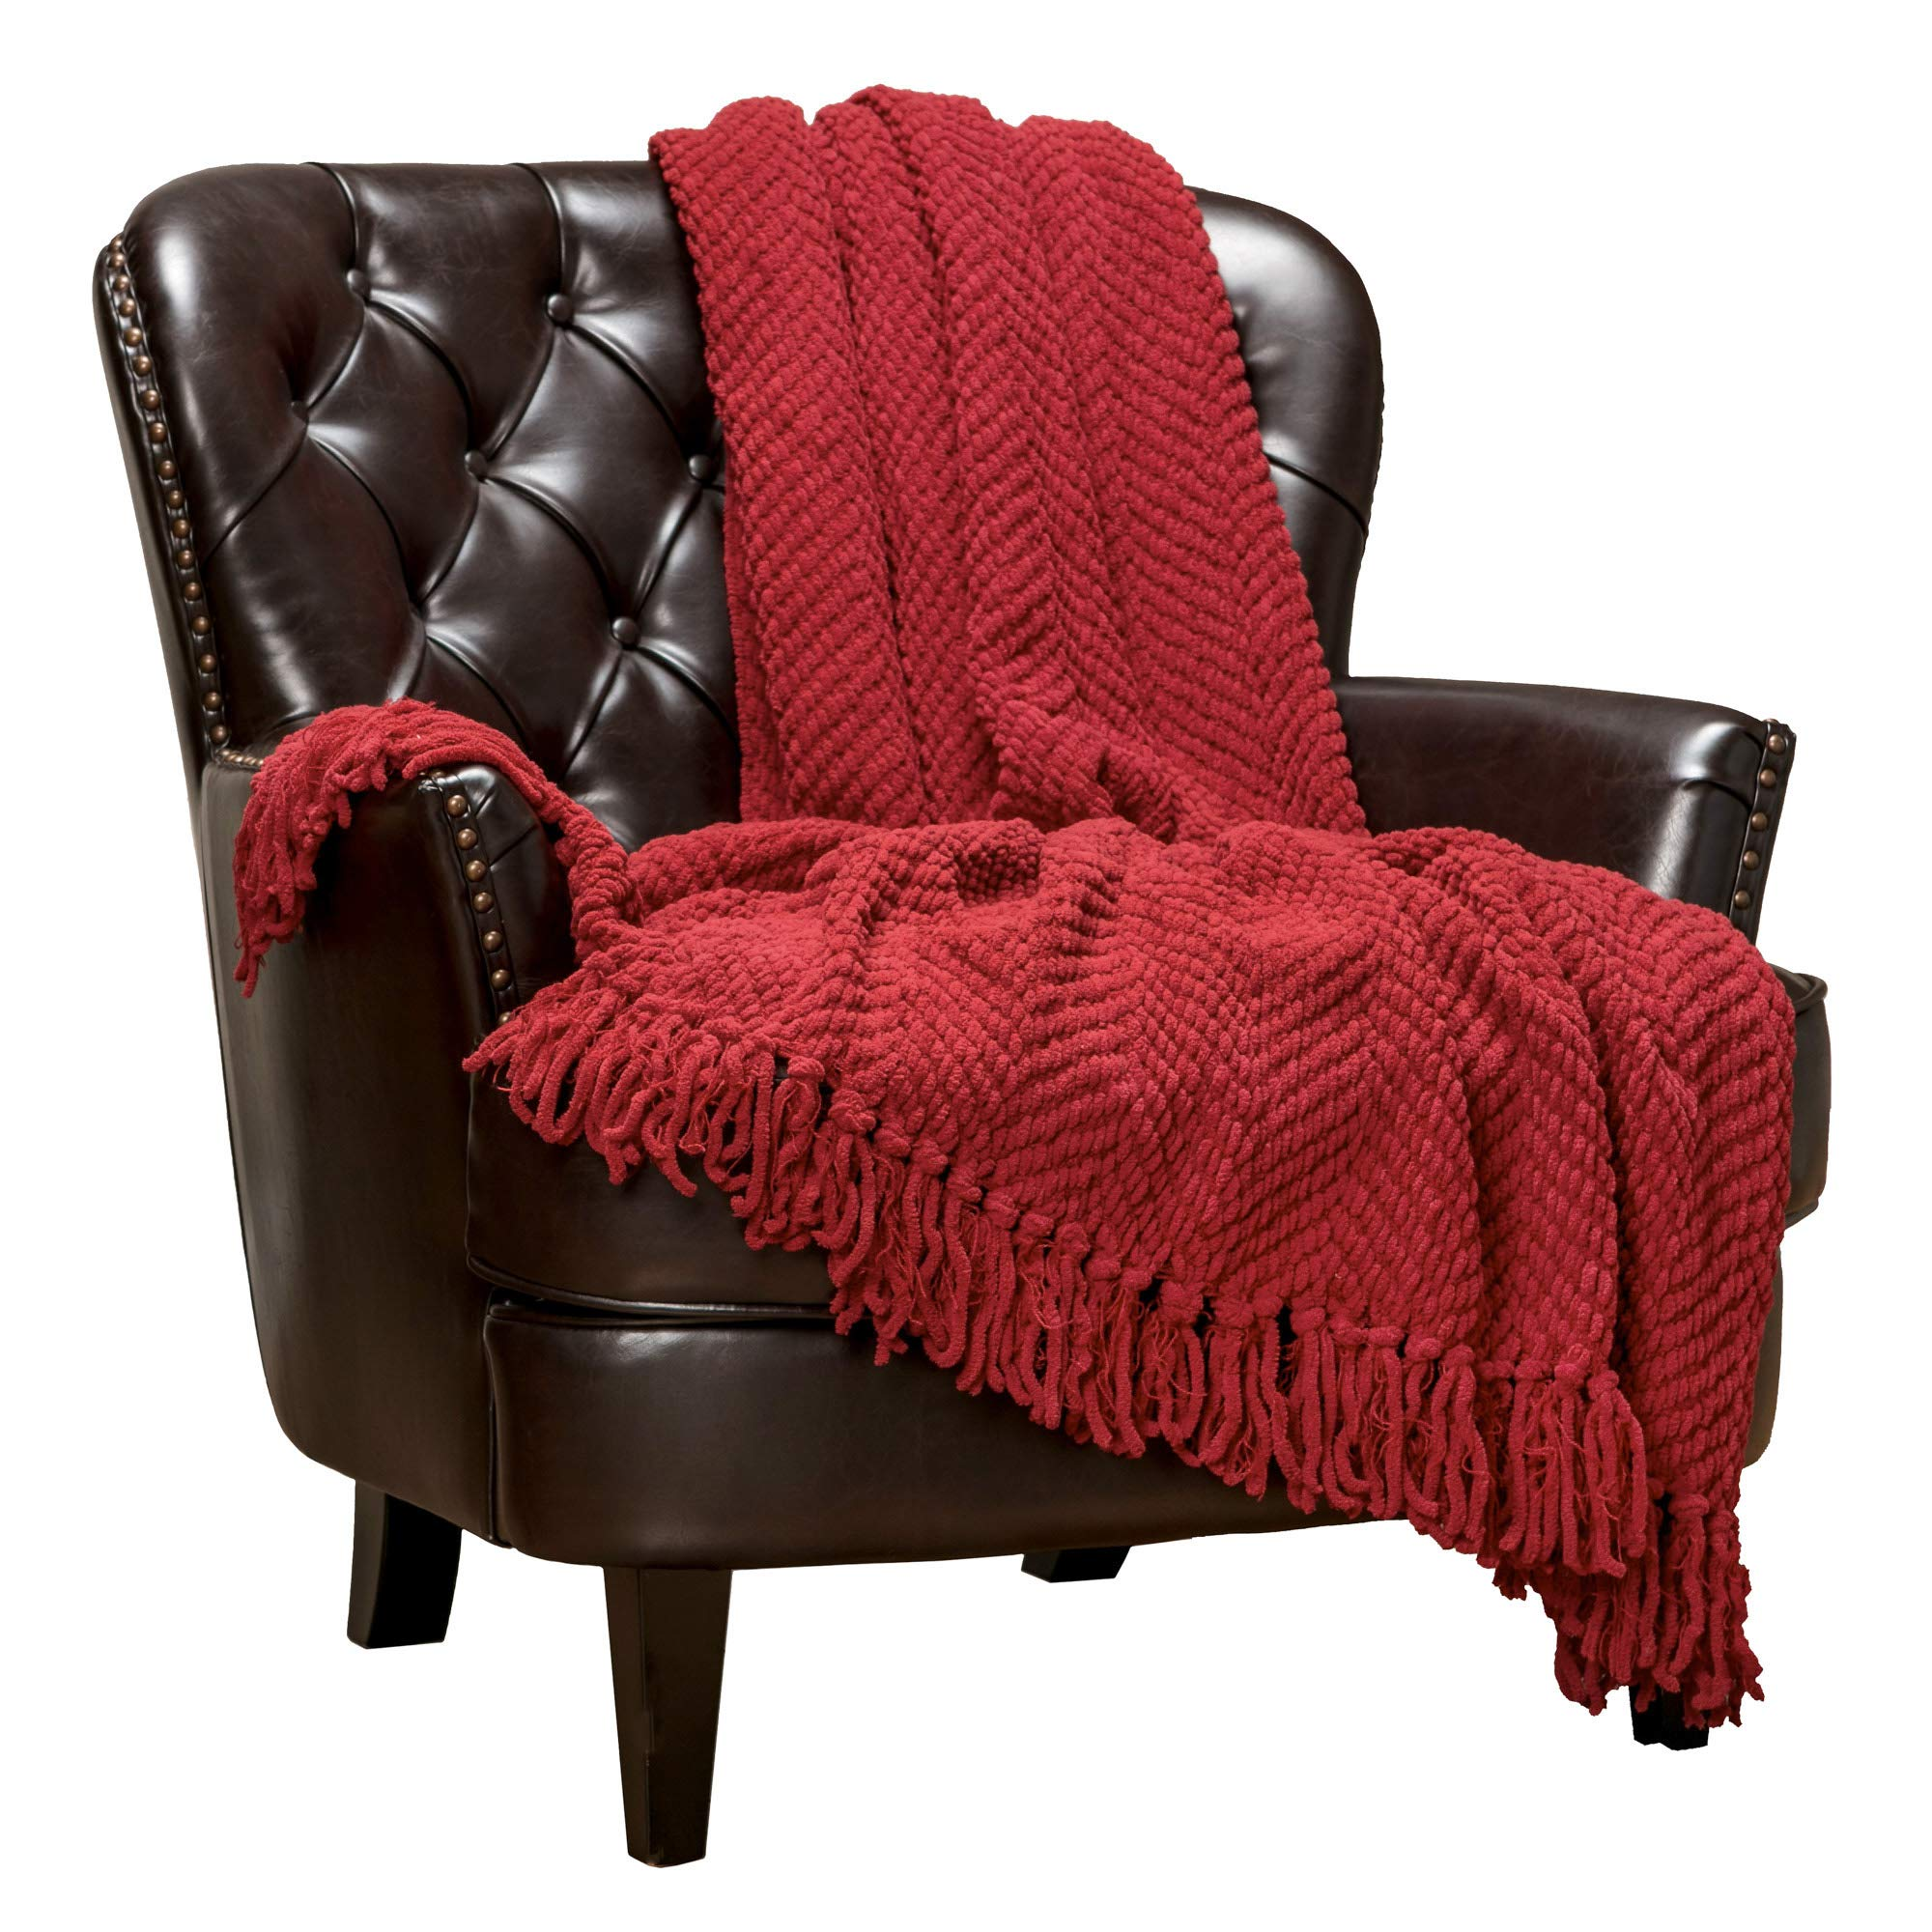 Chanasya Textured Knitted Super Soft Throw Blanket with Tassels Cozy Plush Lightweight Fluffy Woven Blanket for Bed Sofa Chair Couch Cover Living Bed Room Acrylic Red Throw Blanket (50x65 Inches) Red